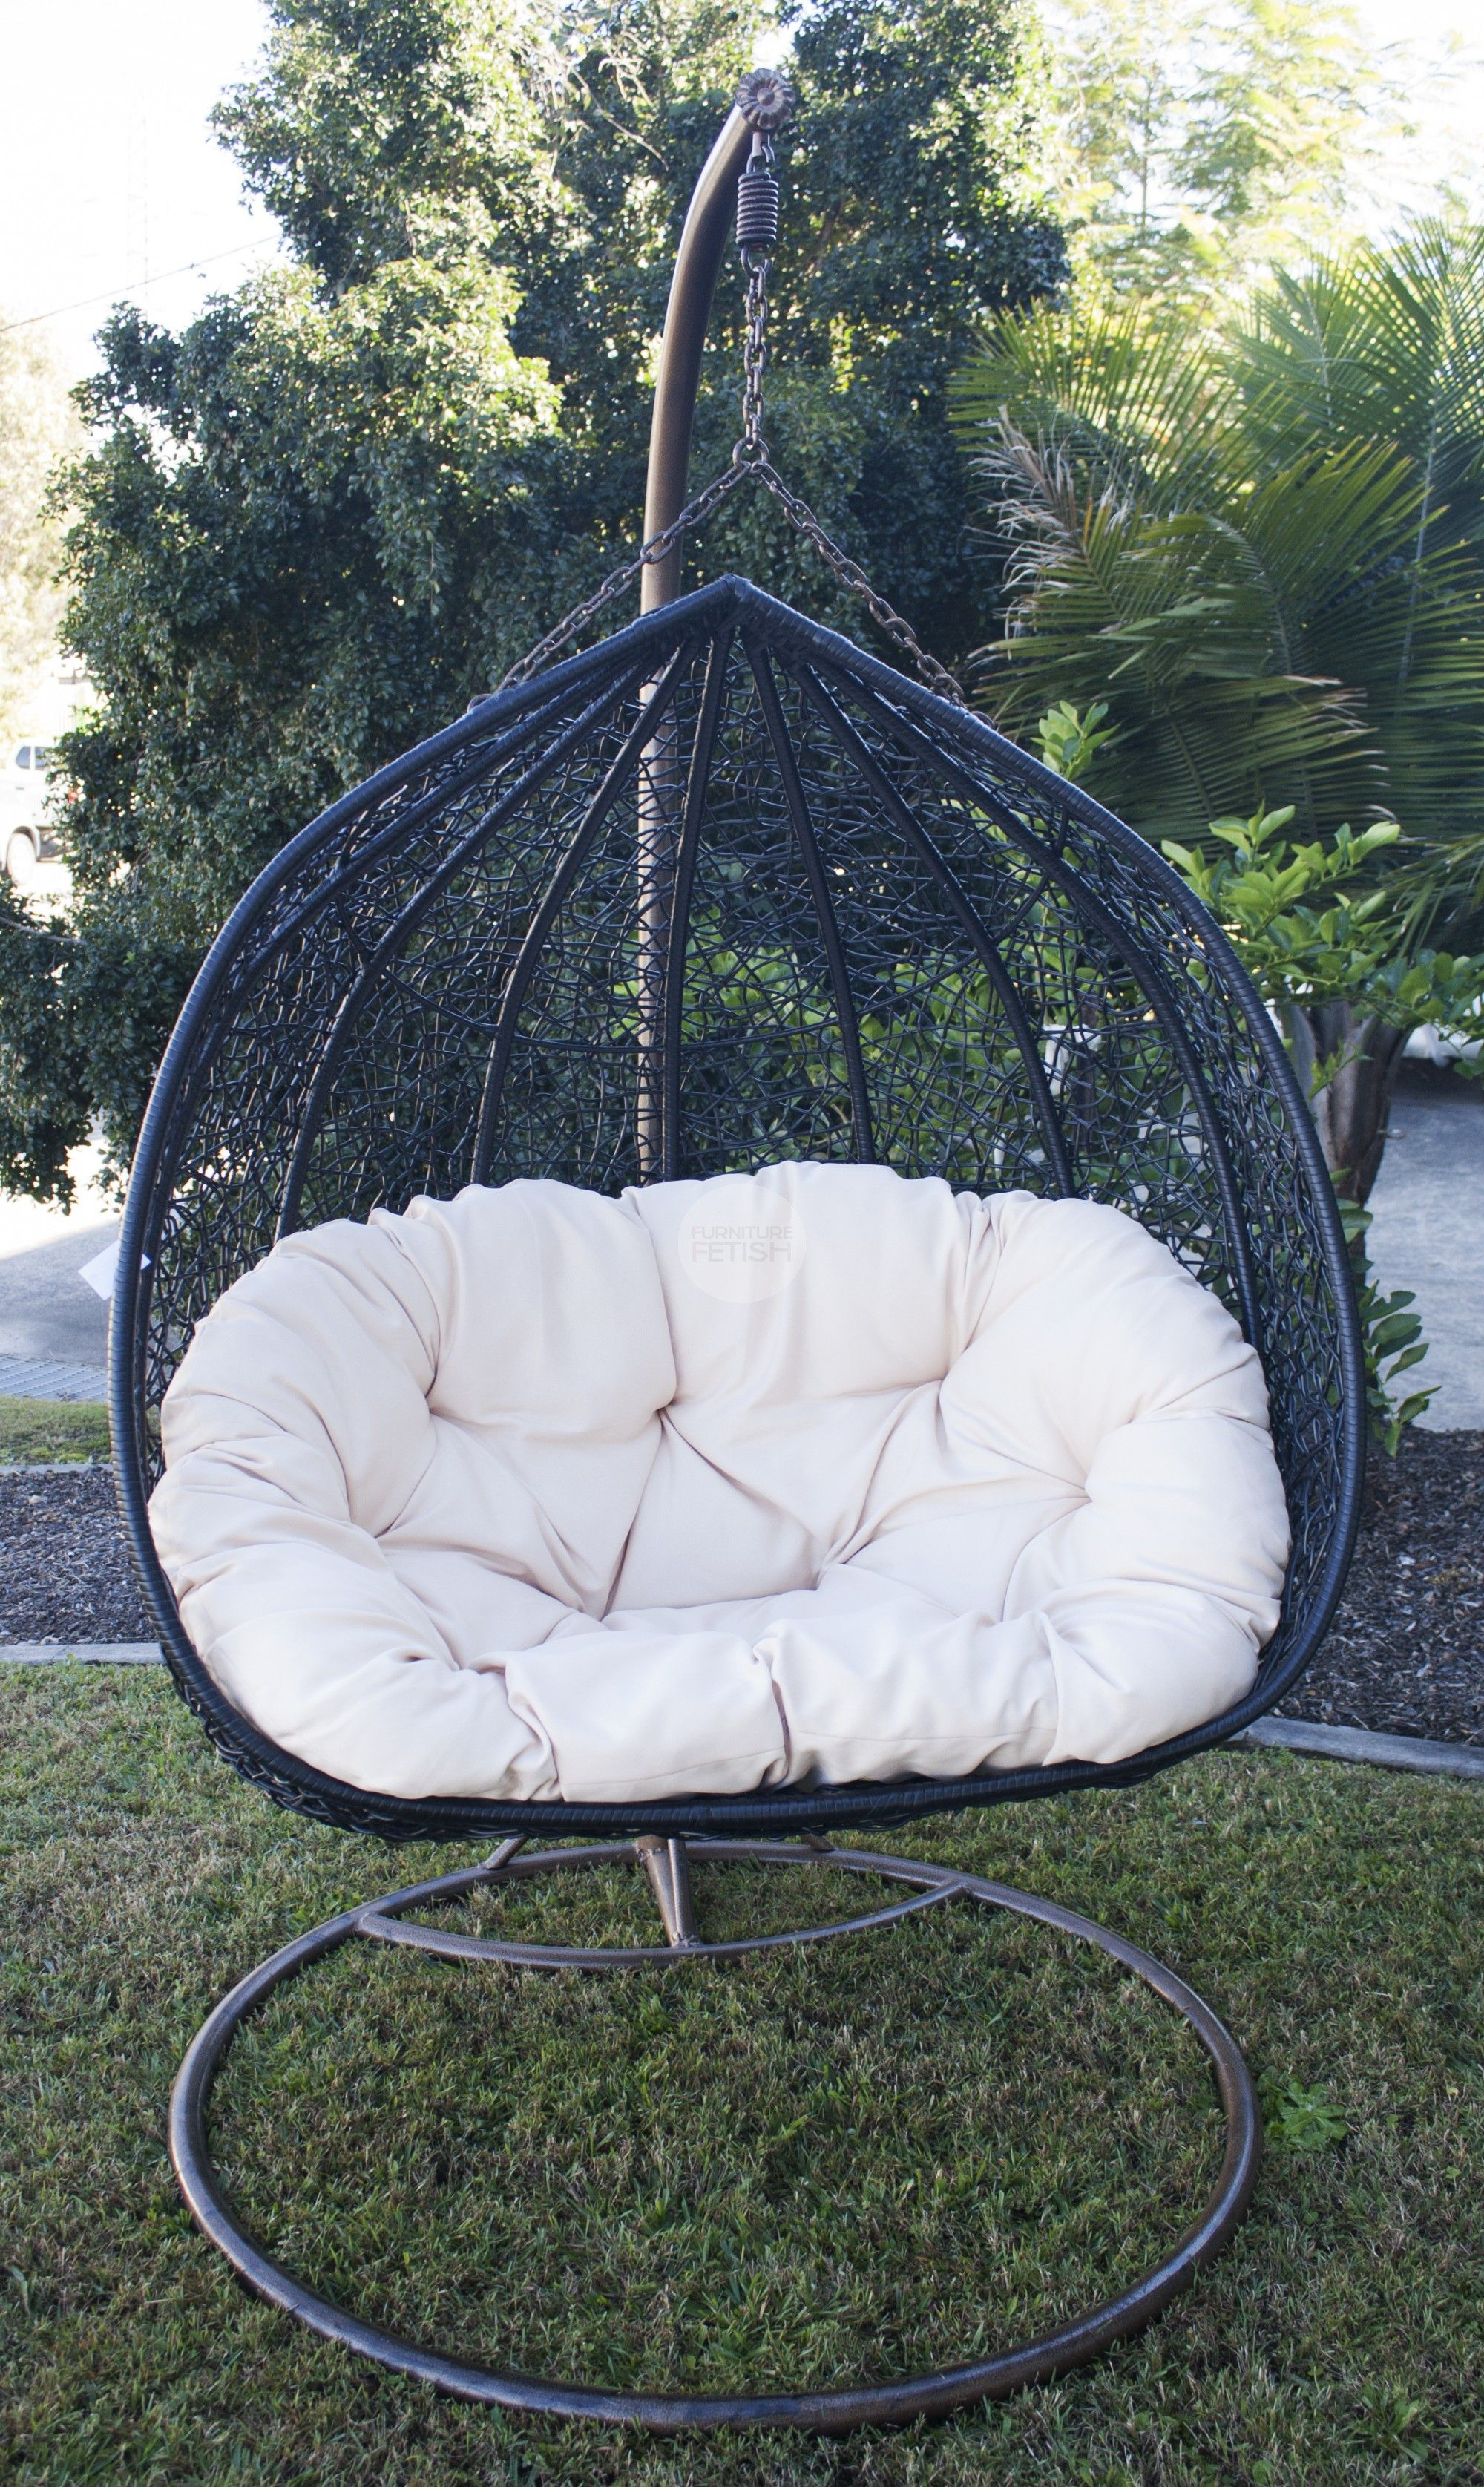 Egg Wicker Chair 479 Double Hanging Egg Chair Rattan Wicker Coooool Day Beds